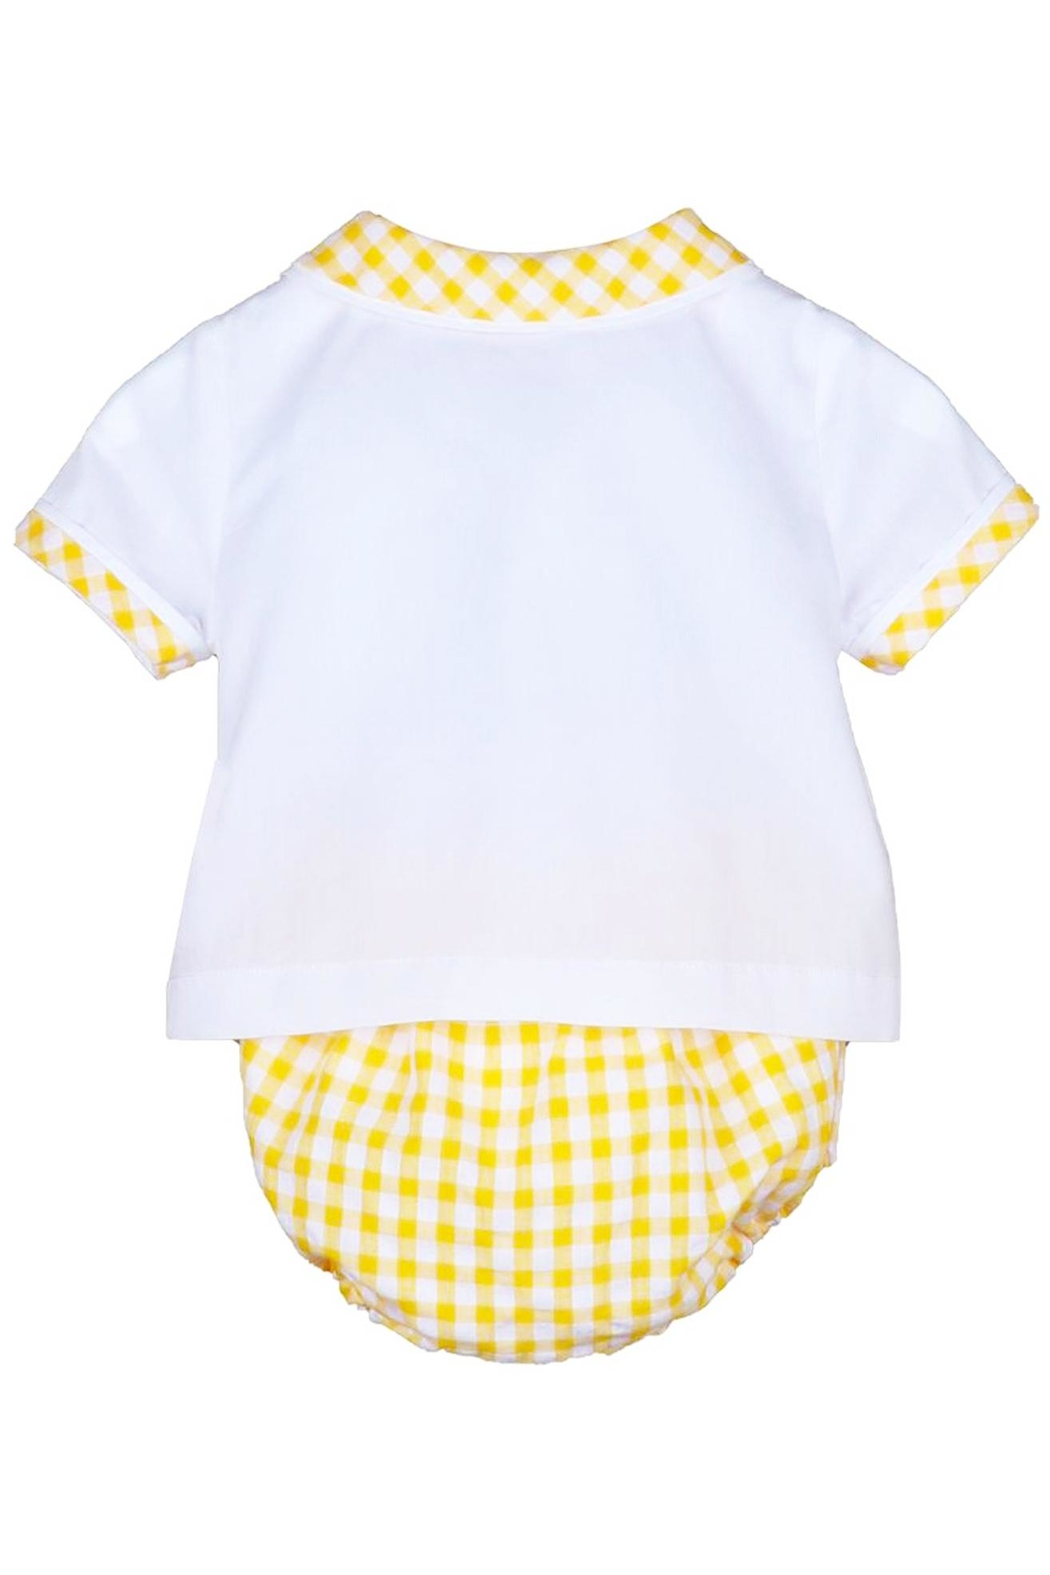 Sophie & Lucas Sunny-Chicks Yellow-Gingham Two-Piece-Set - Side Cropped Image